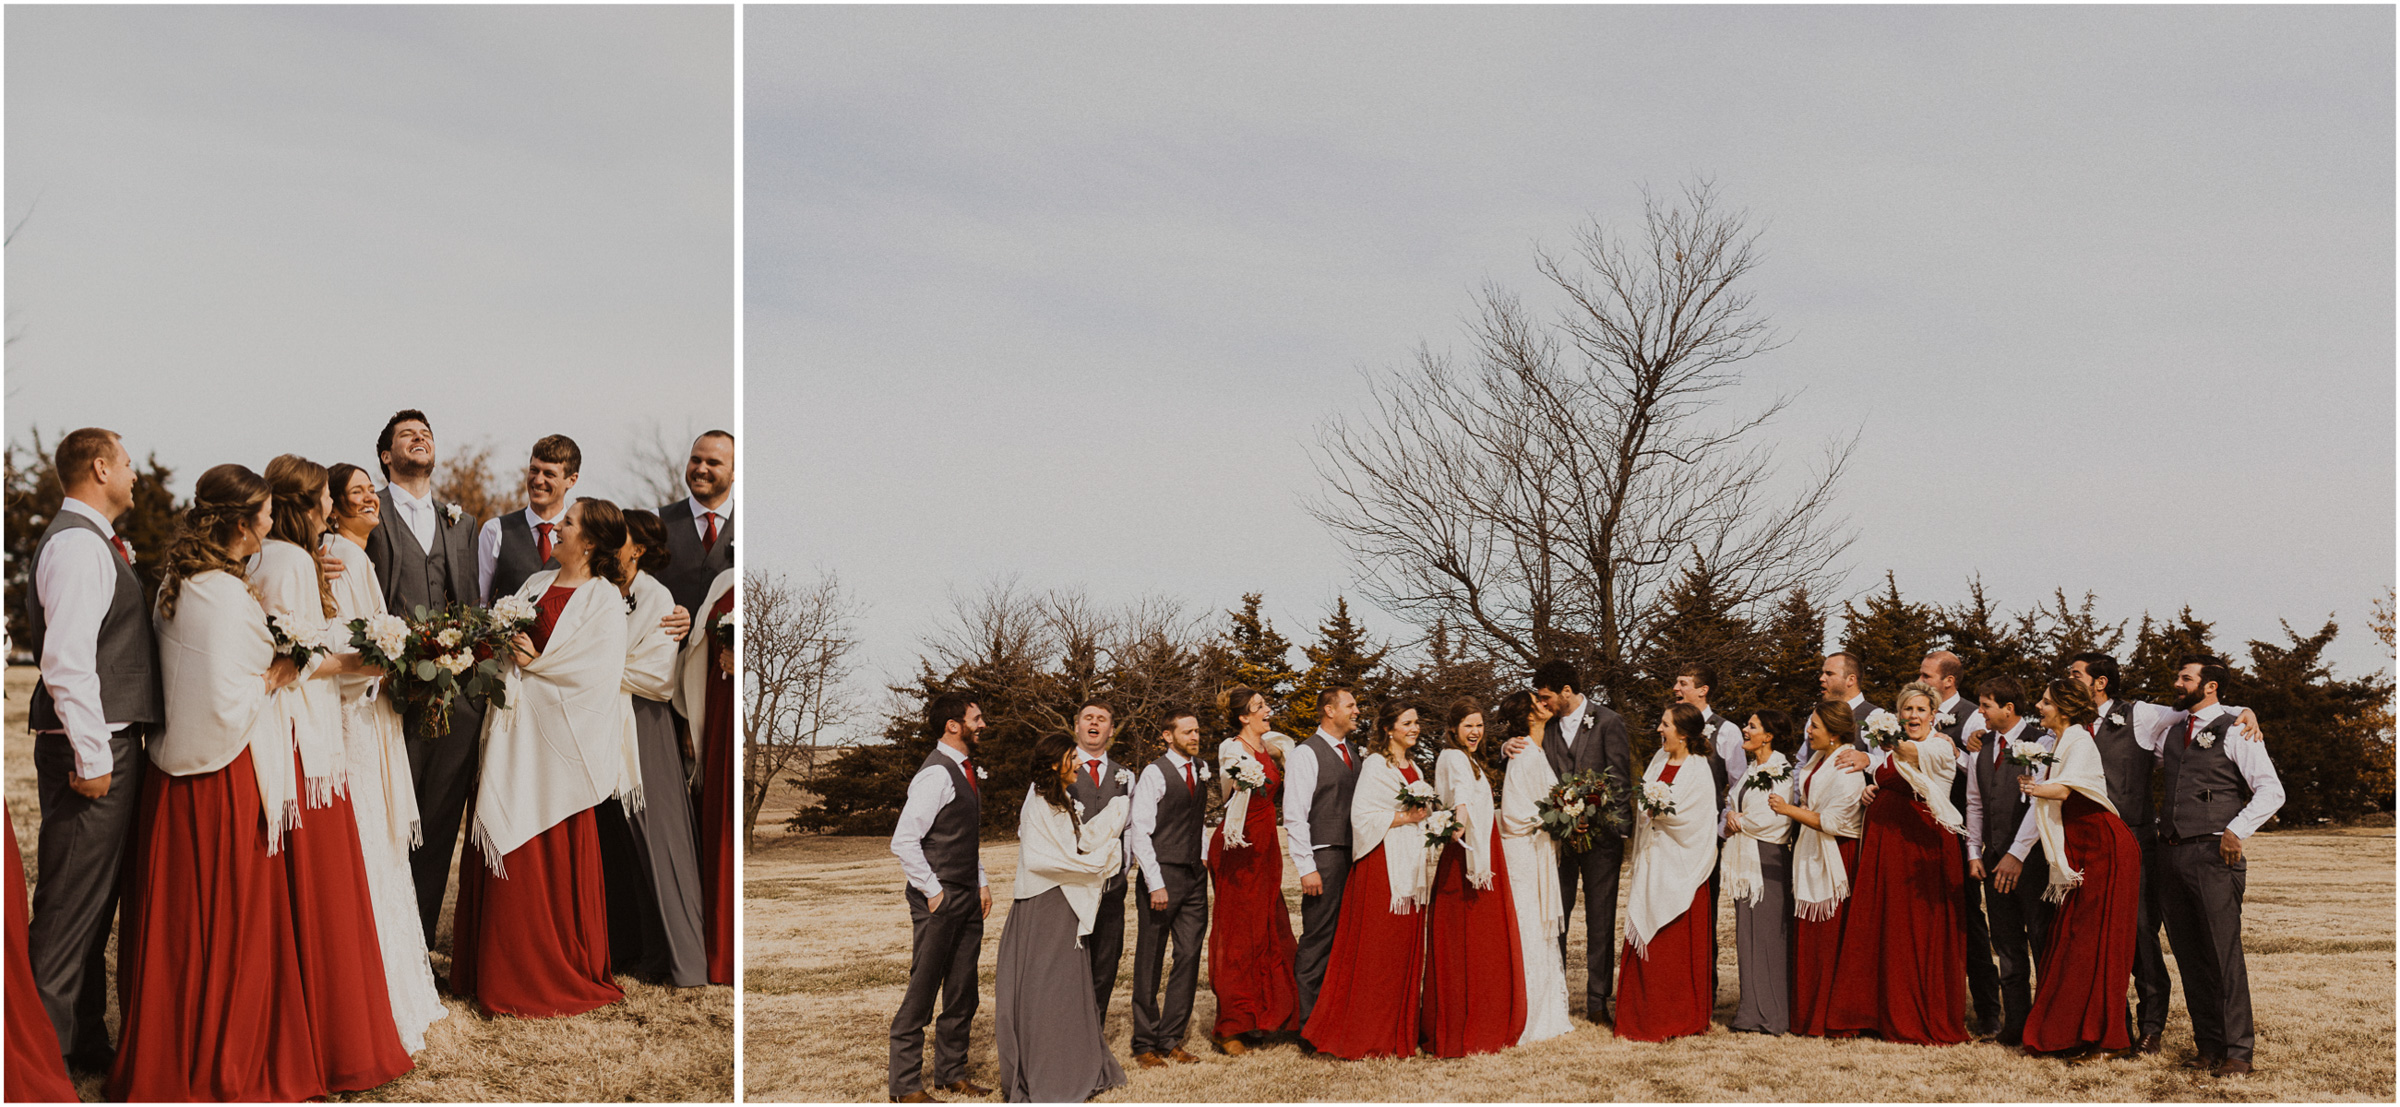 alyssa barletter photography winter odin great bend claflin kansas wedding photographer-34.jpg